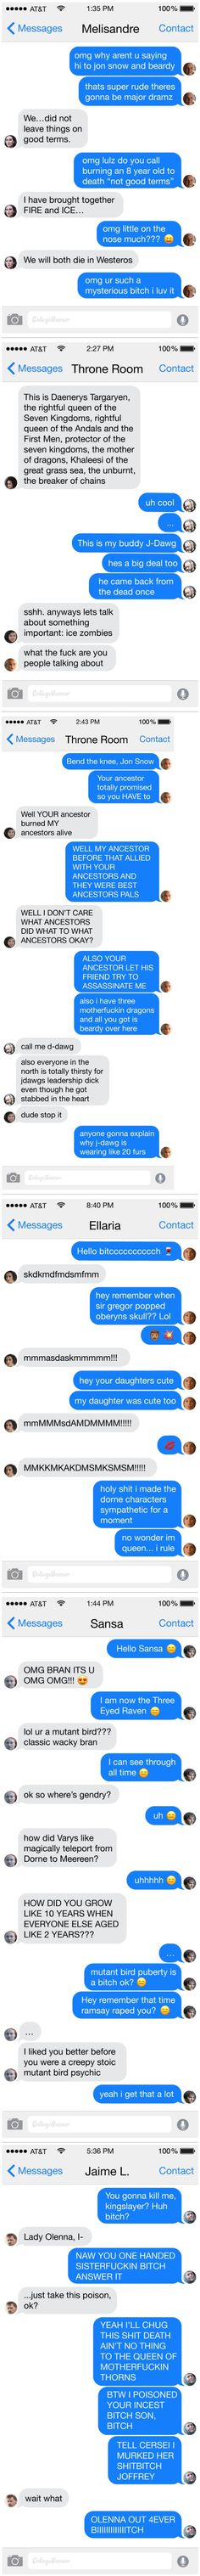 6 Text Convos Sum Up The Game Of Thrones Episode 3